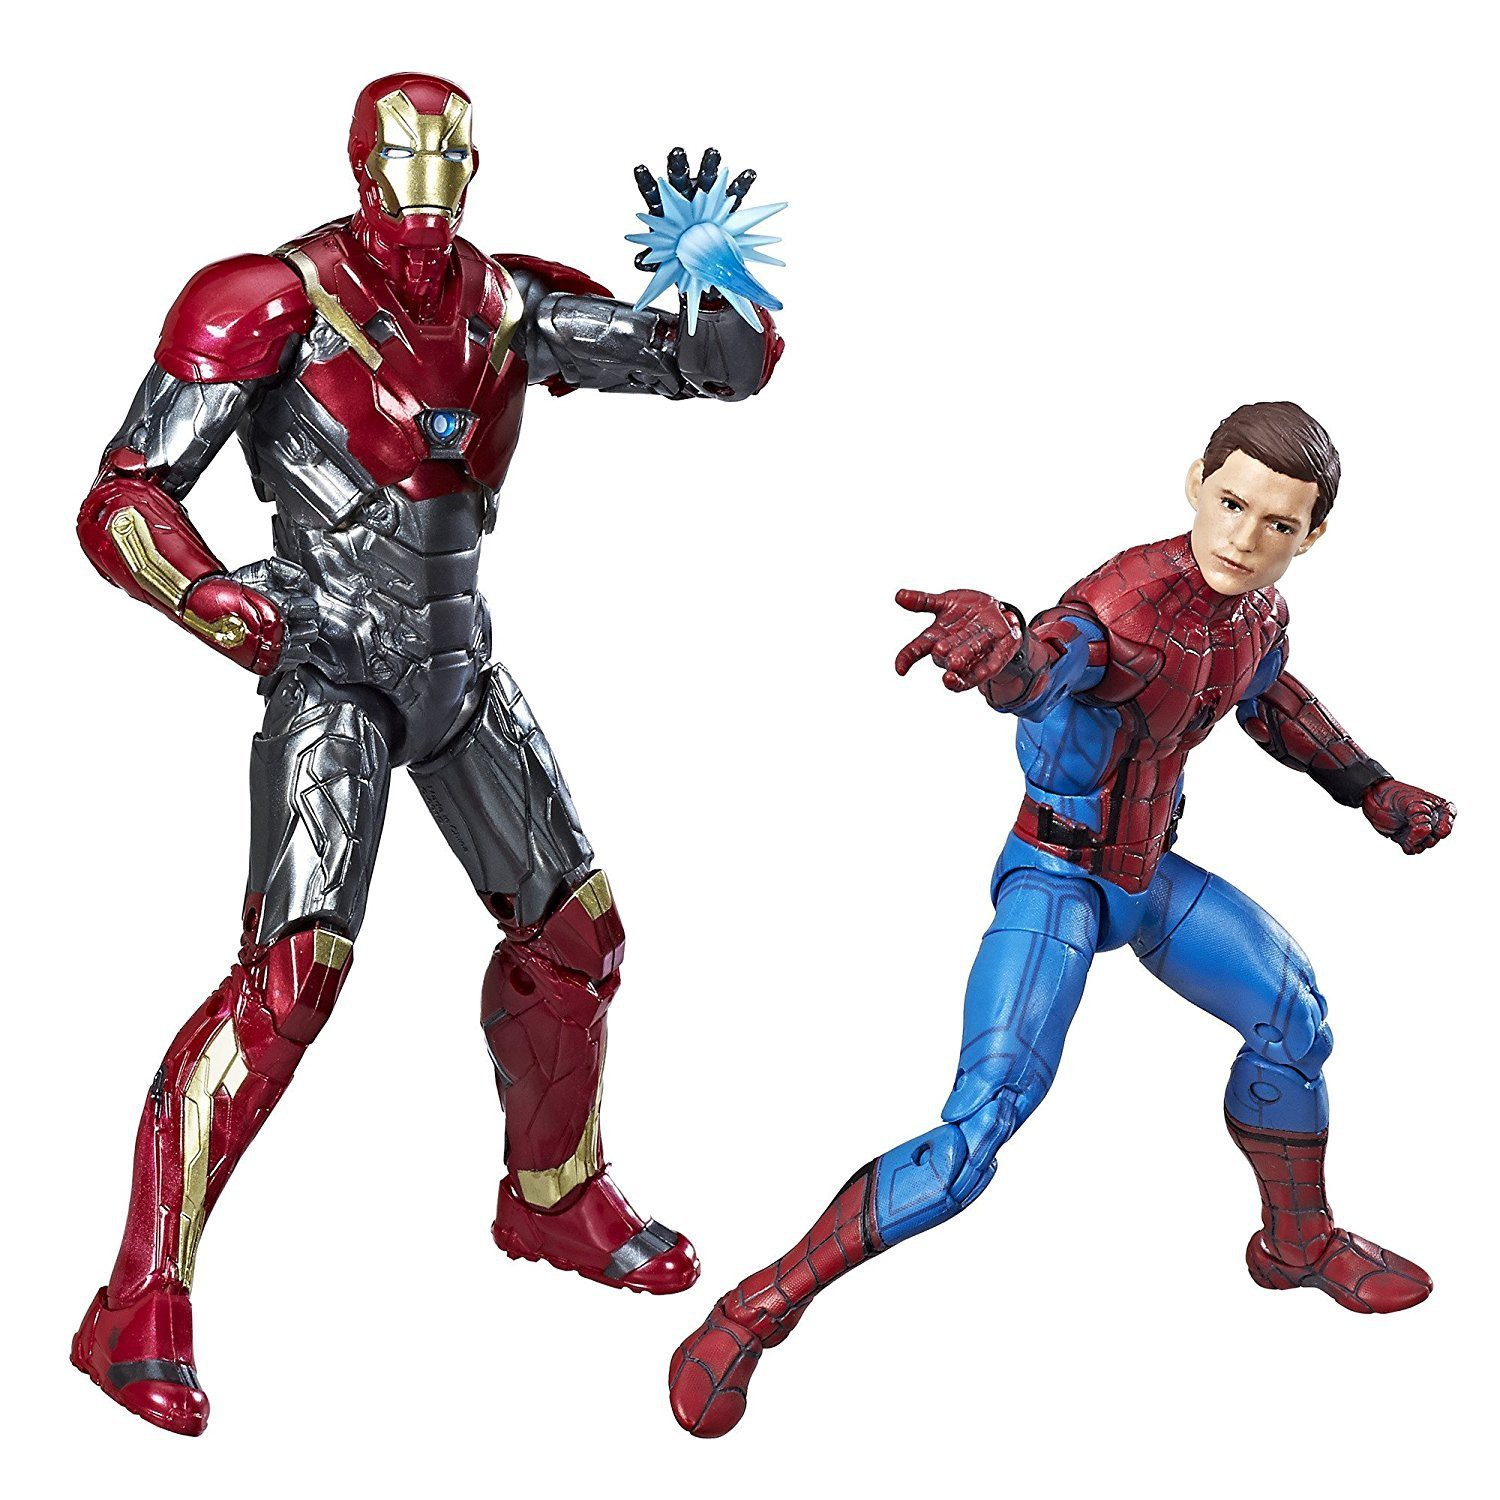 MARVEL UNIVERSE SPIDER-MAN SENTRY COMIC 2 PACK NEW AVENGERS